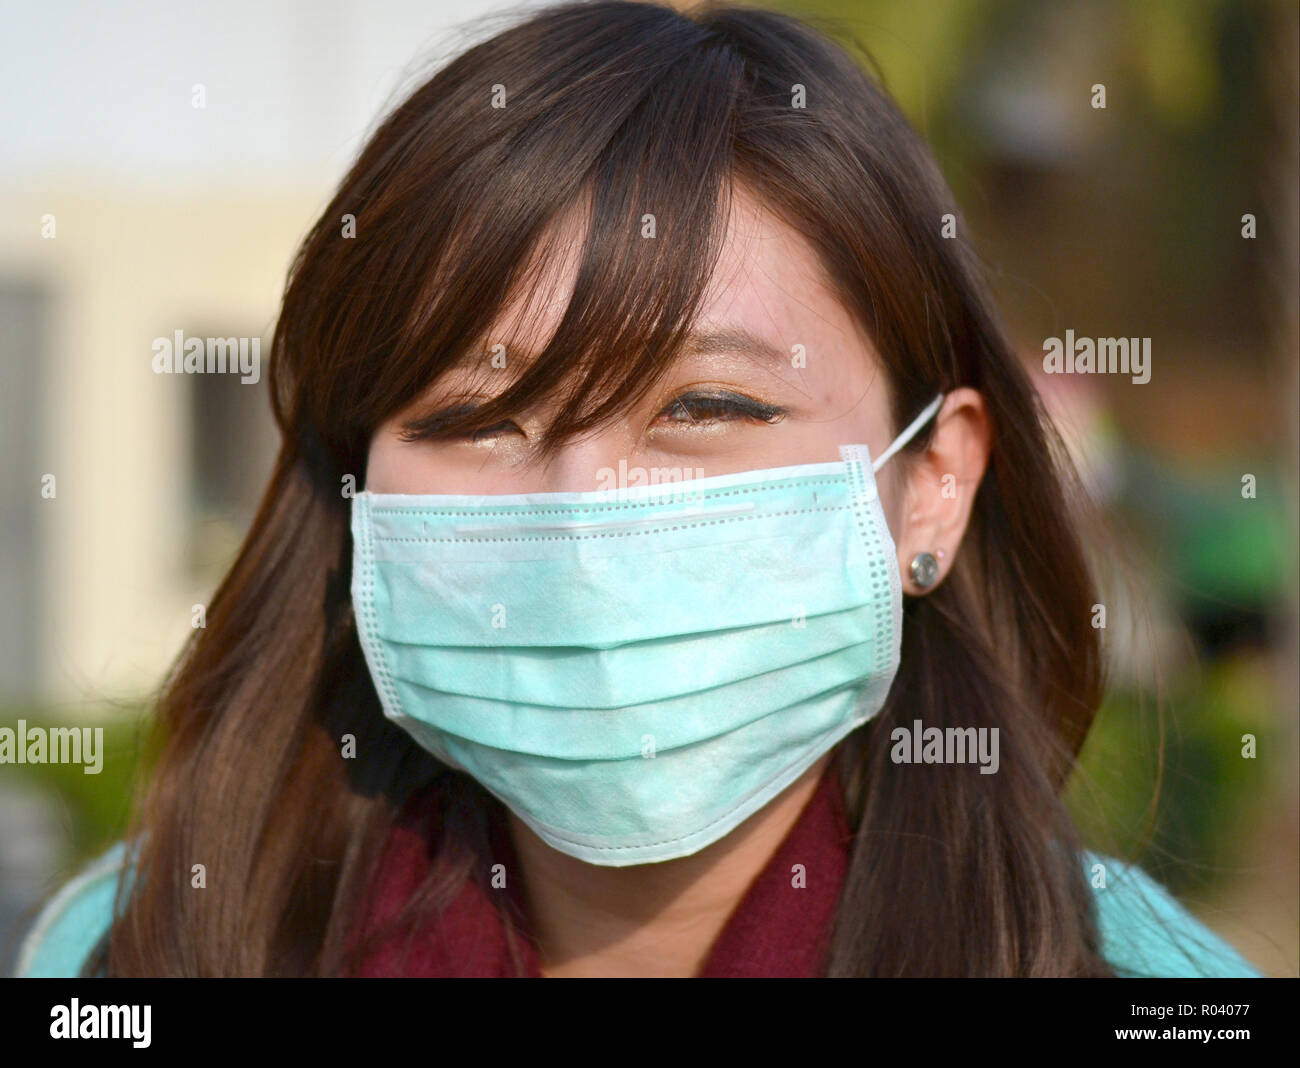 Young Taiwanese woman with oriental eyes wears a light-green disposable surgical earlobe face mask. - Stock Image